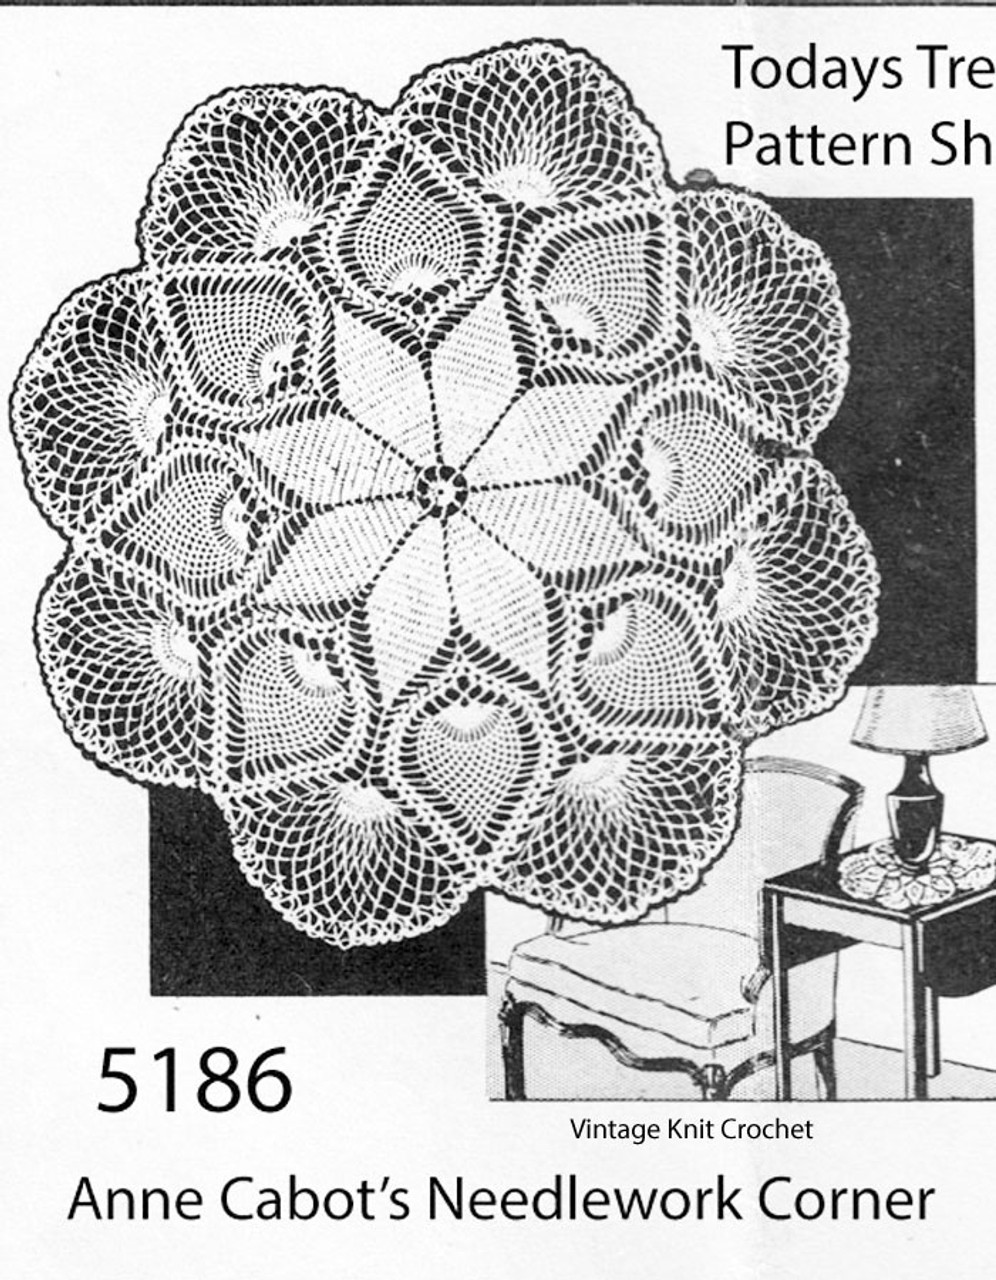 Large Pineapple Crochet Doily Pattern, Anne Cabot 5186